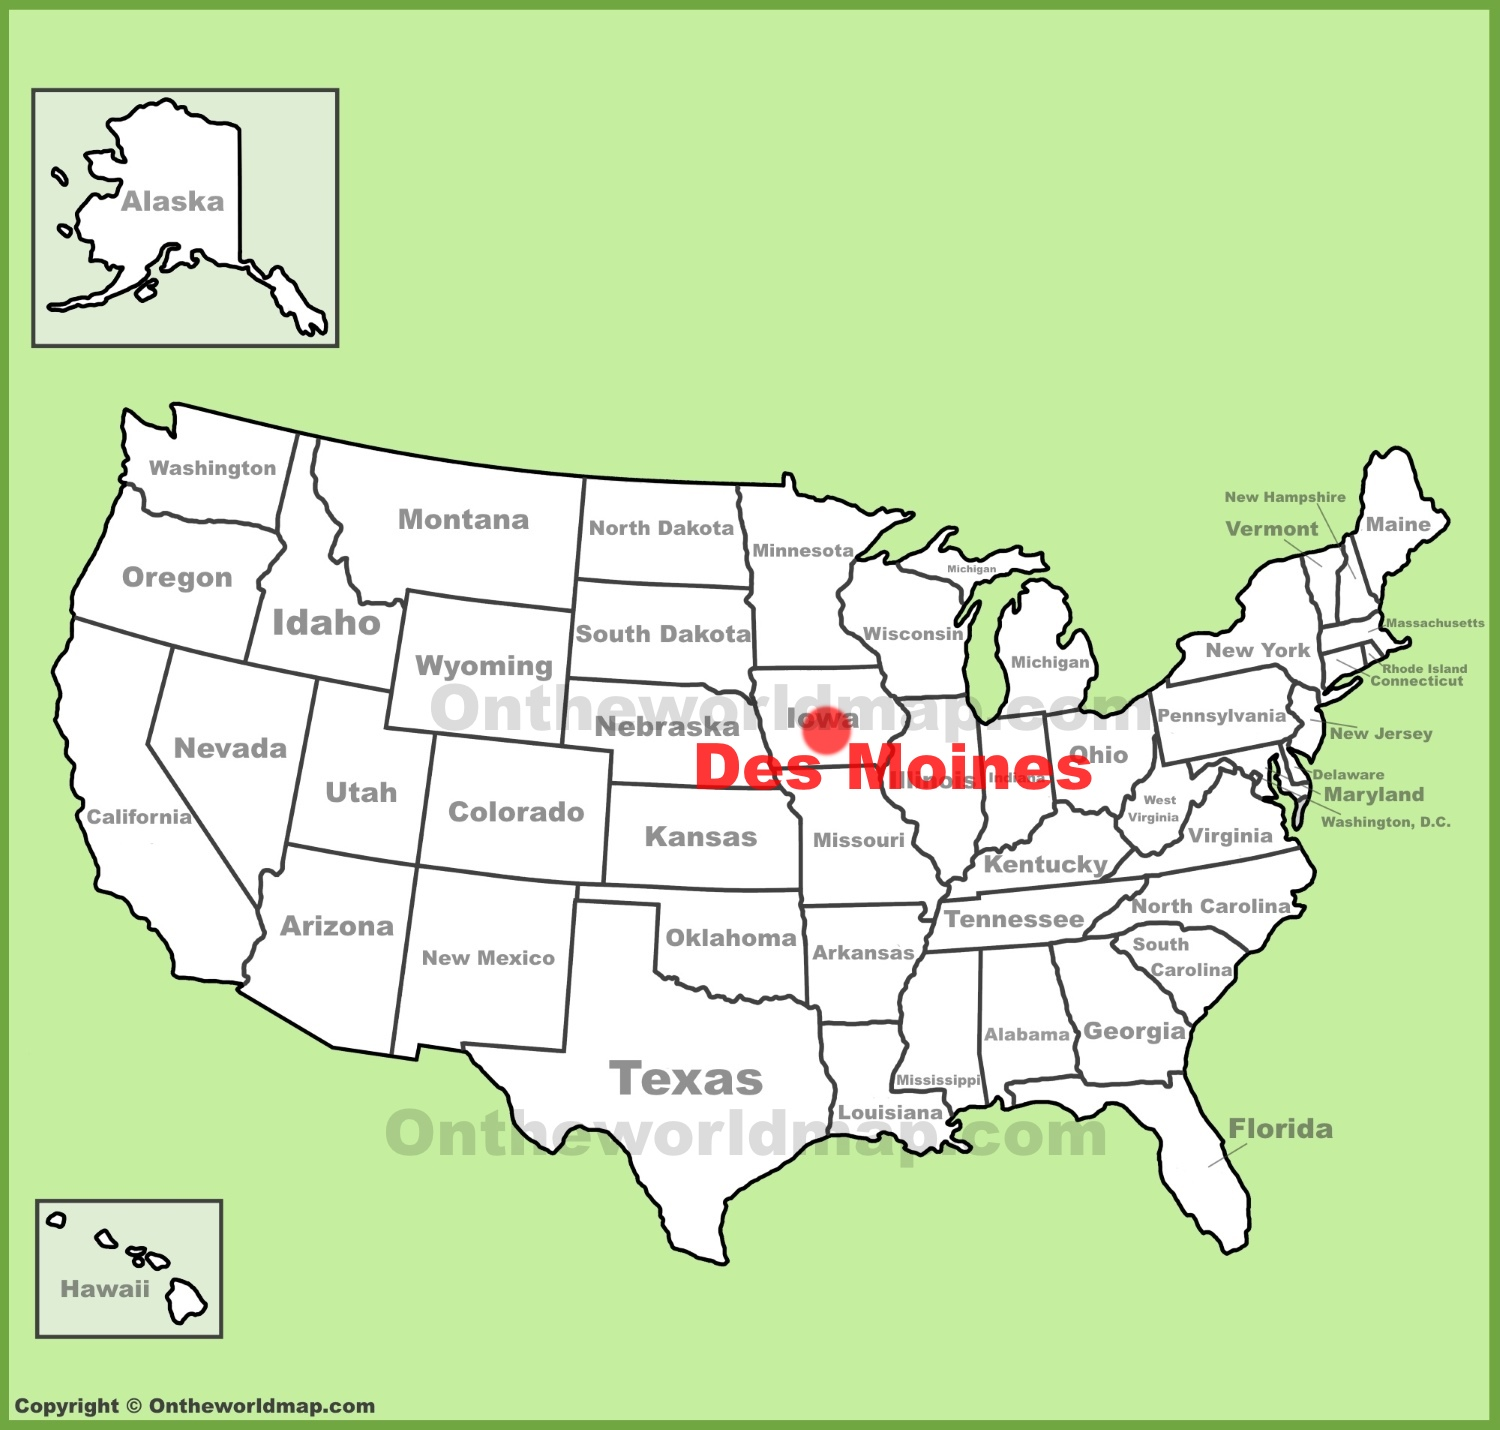 Des Moines location on the U.S. Map on